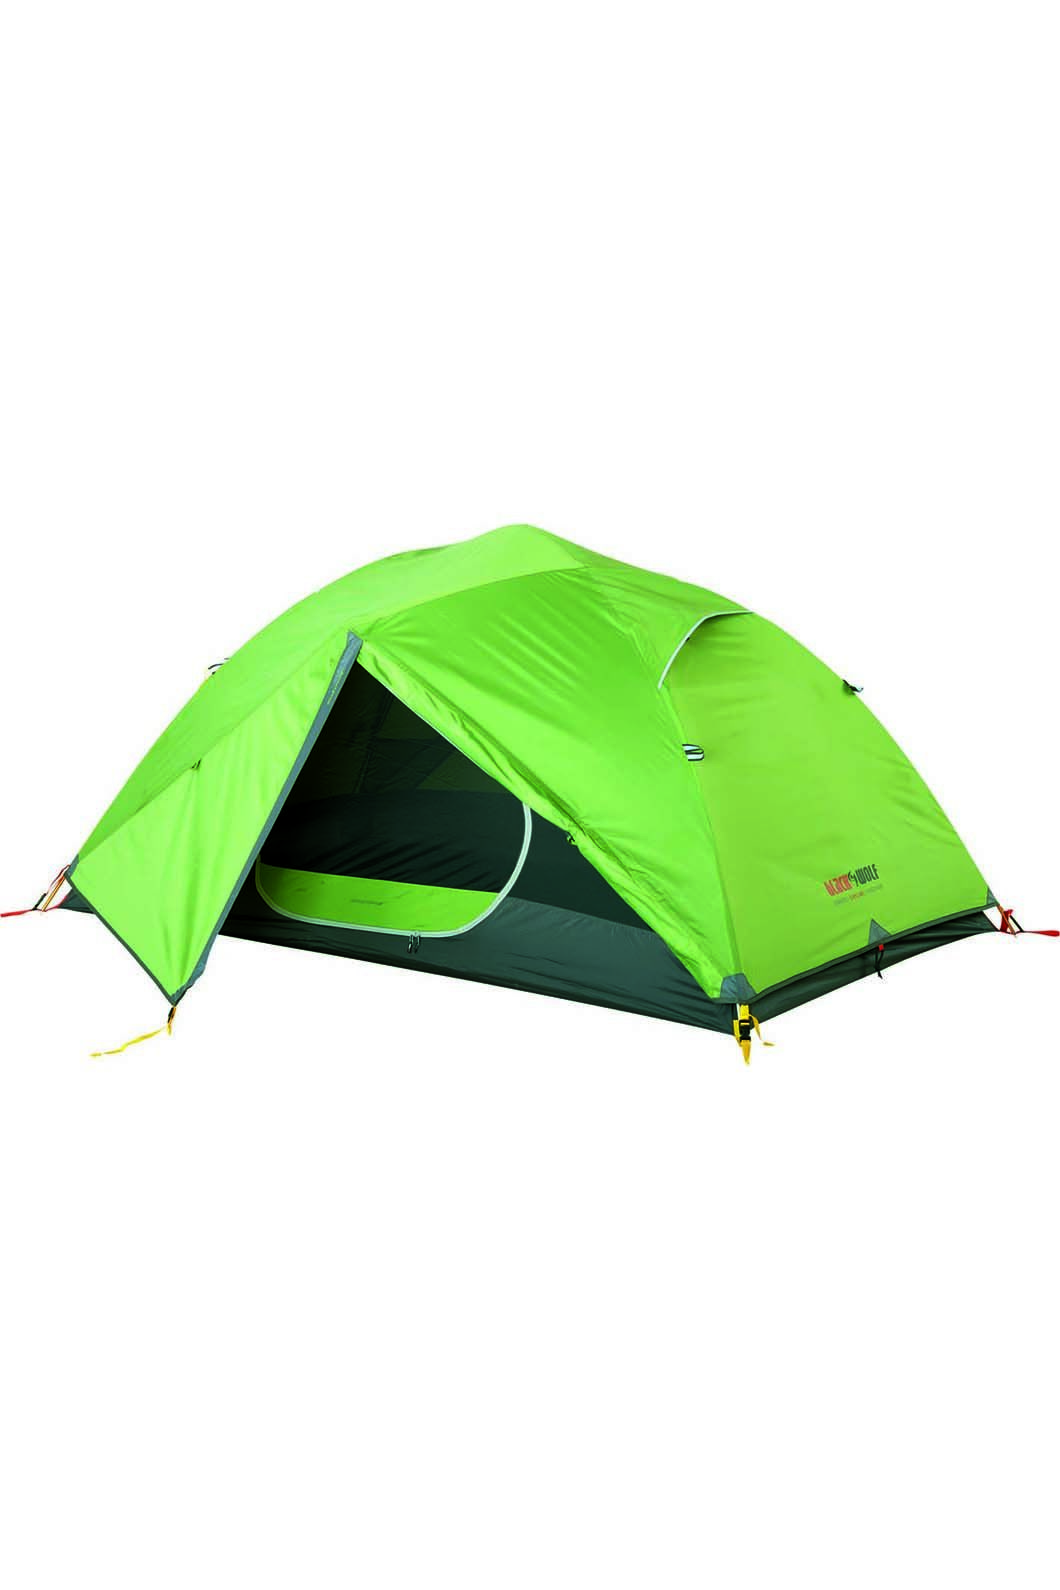 wolf Grasshopper 3 Person Hiking Tent, None, hi-res